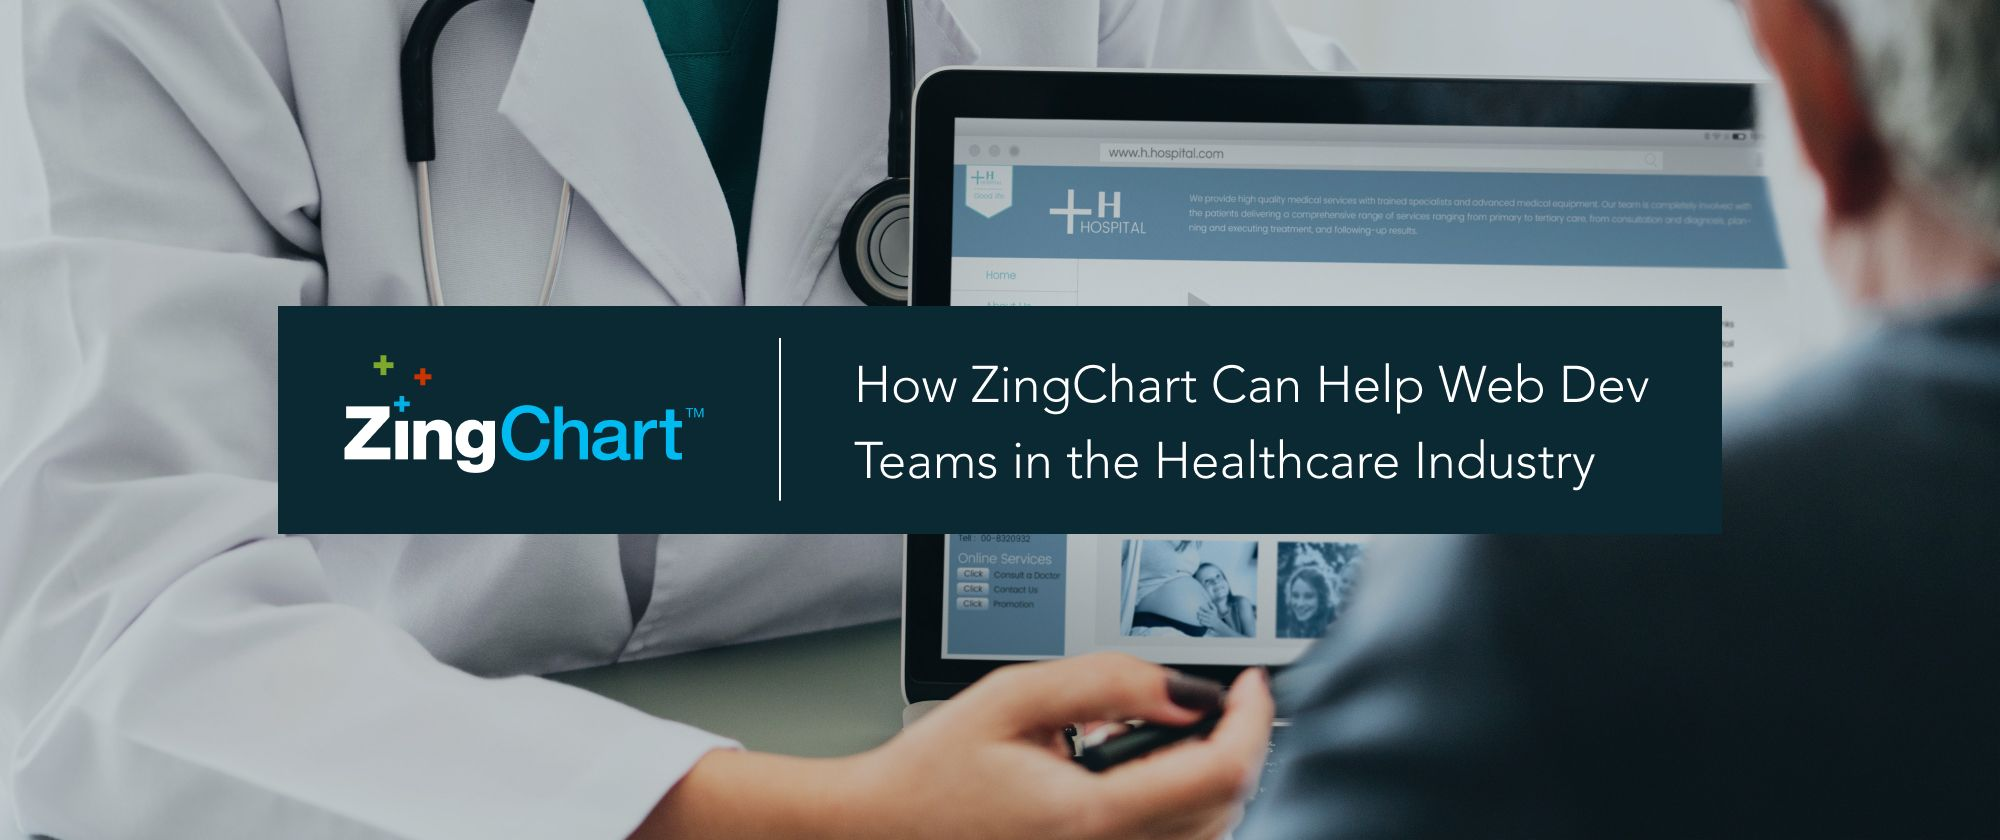 Cover image for 'How ZingChart Can Help Web Dev Teams in the Healthcare Industry' blog post